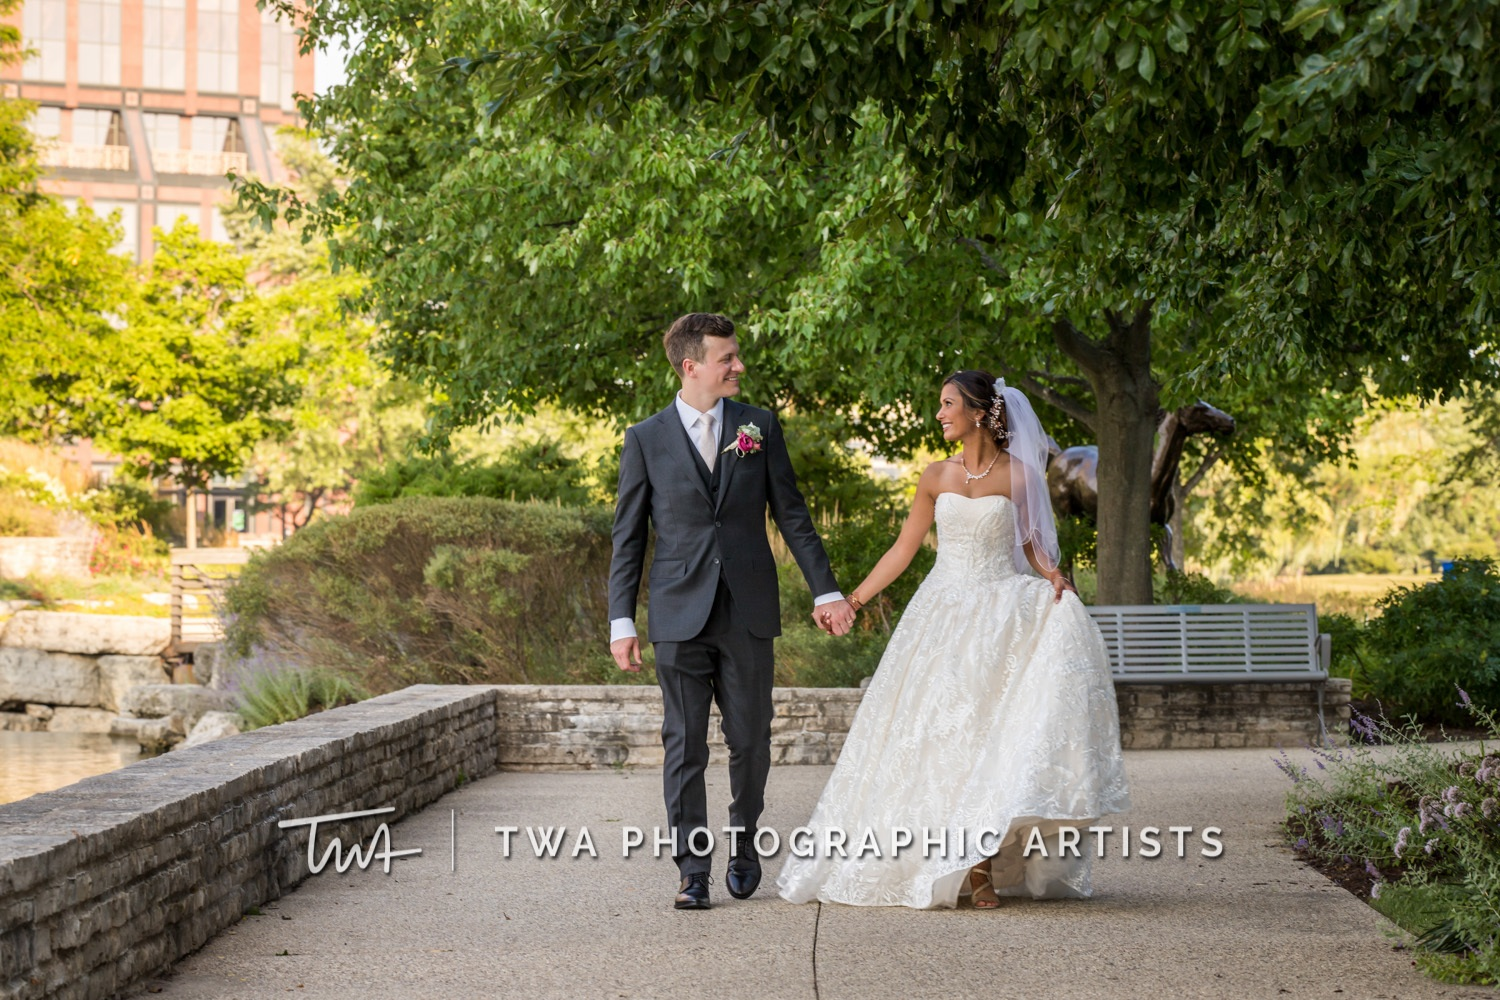 Chicago-Wedding-Photographer-TWA-Photographic-Artists-Shah_Billings_WM_TL-0811